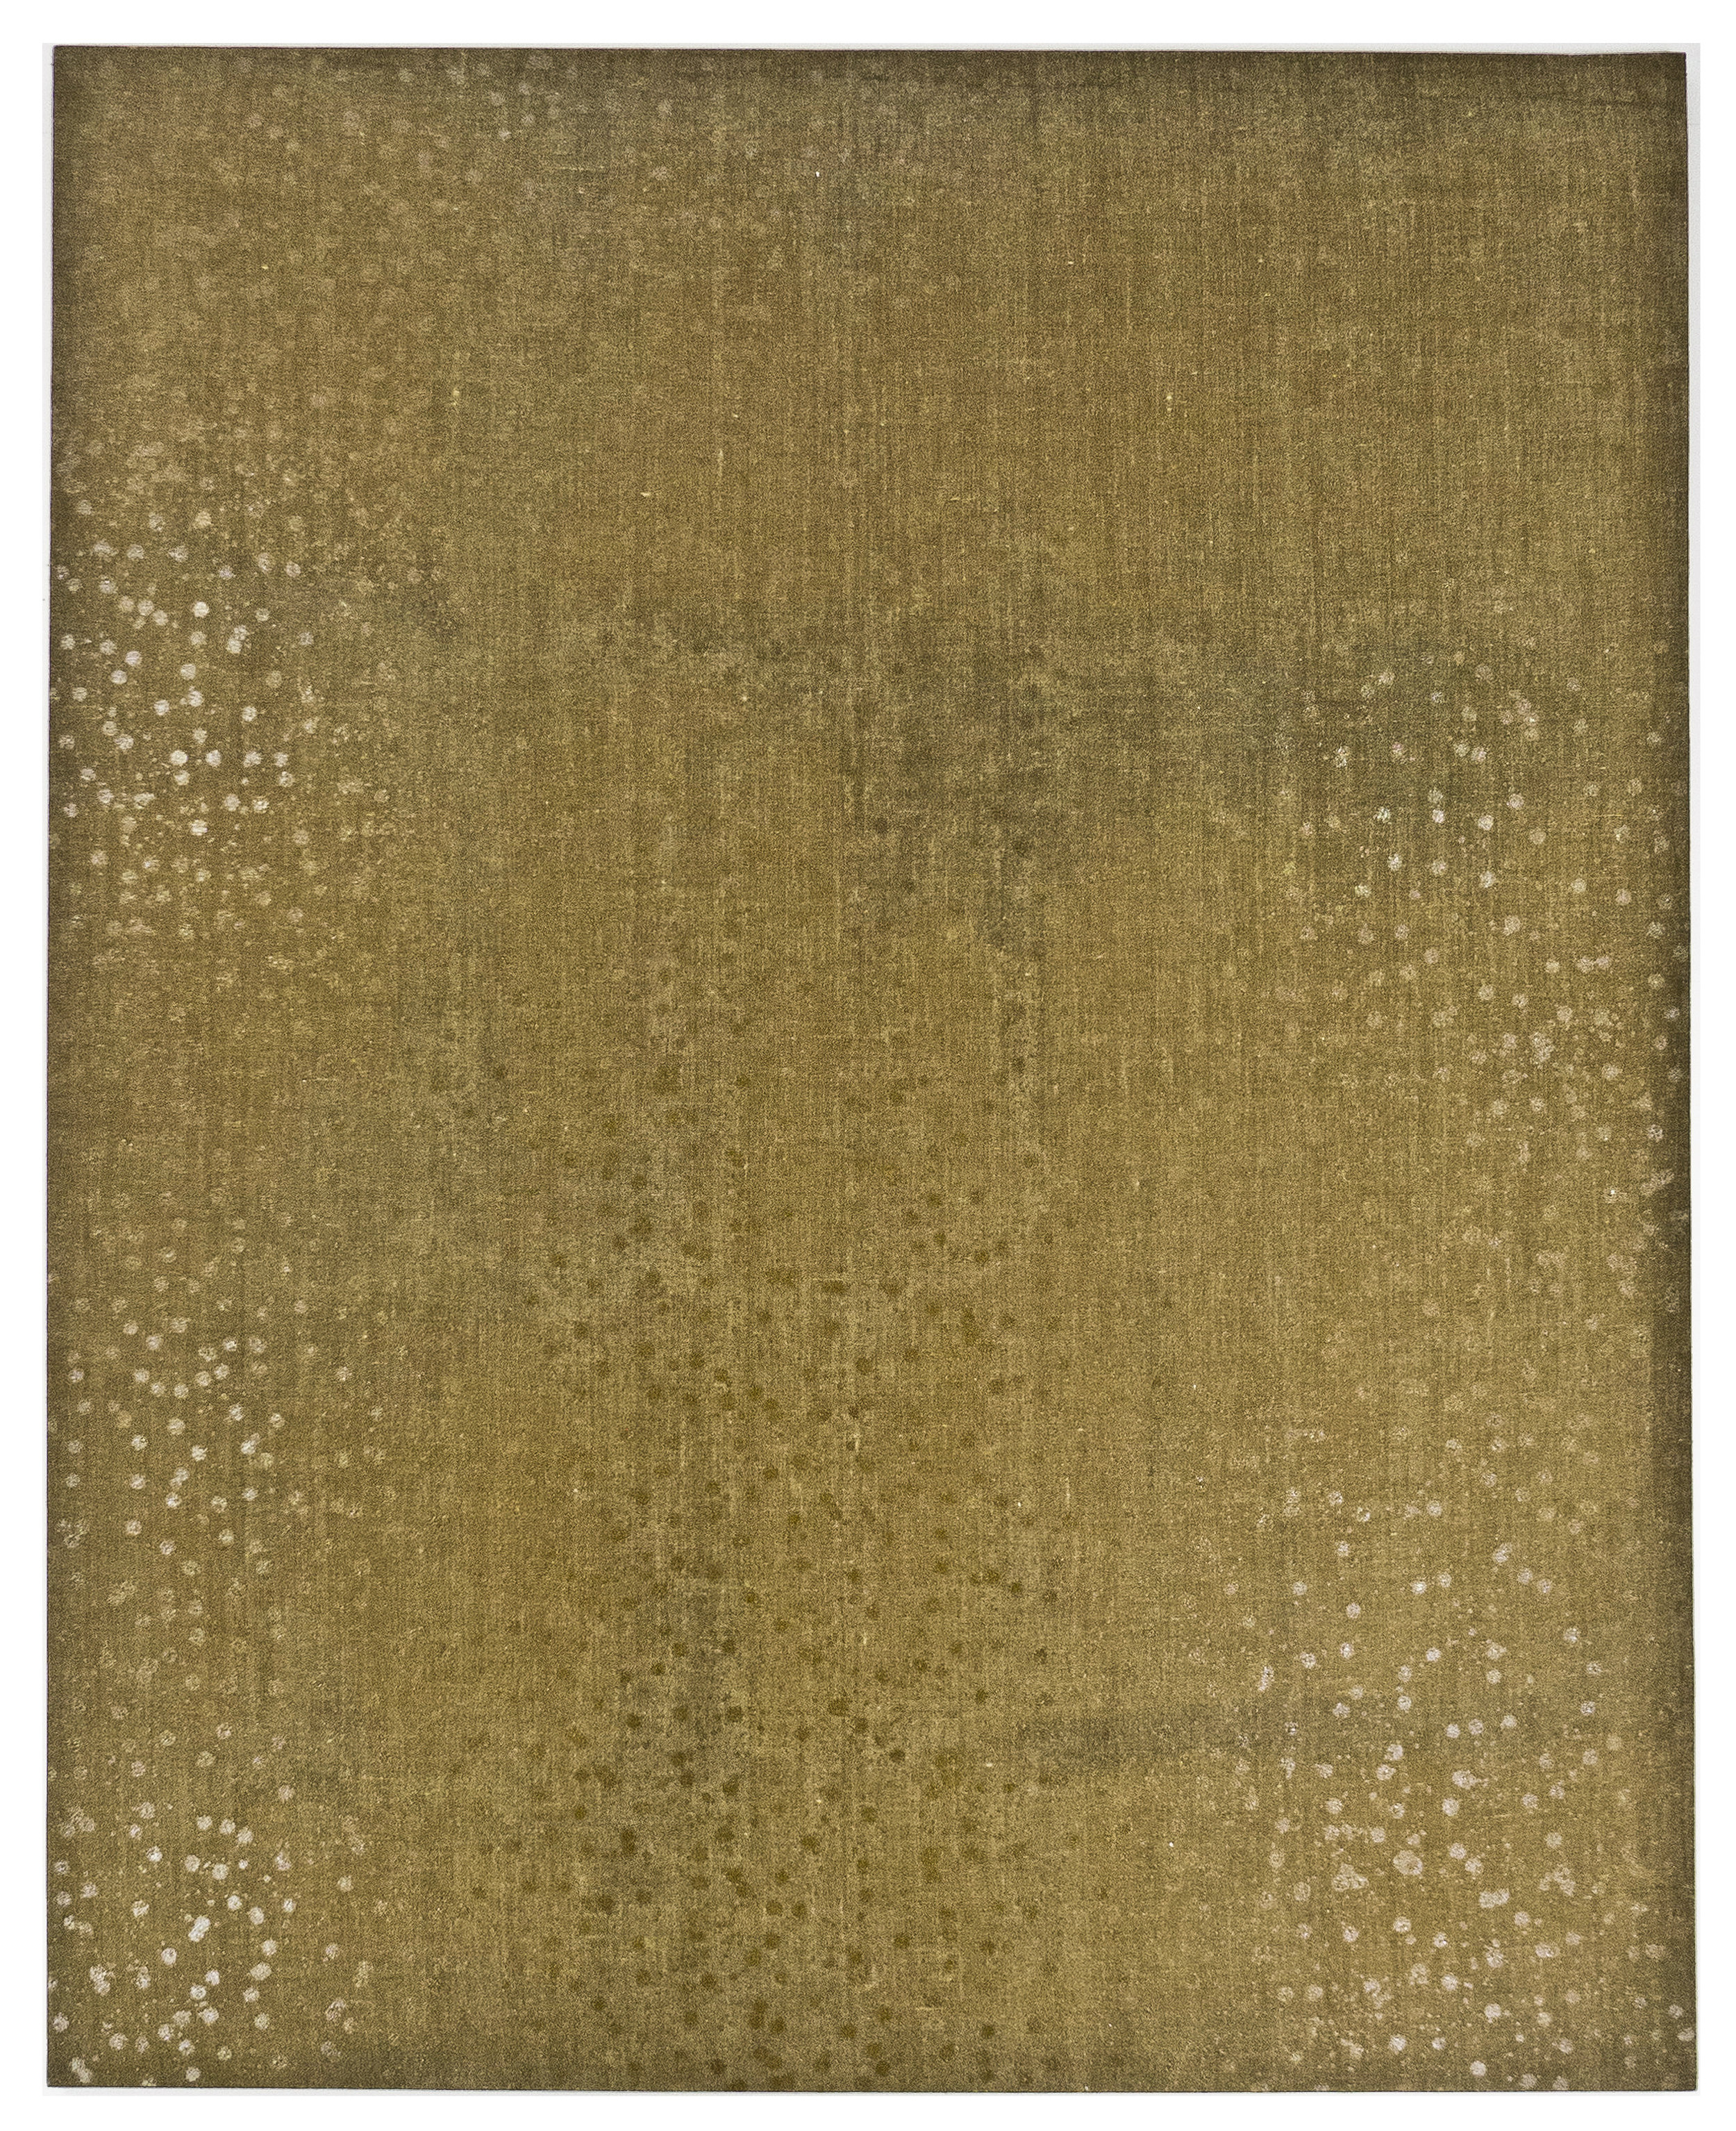 "Ombhro; 1971; Resin/emulsion on unpainted linen; 62 ½ x 50 ½""; Item #255"